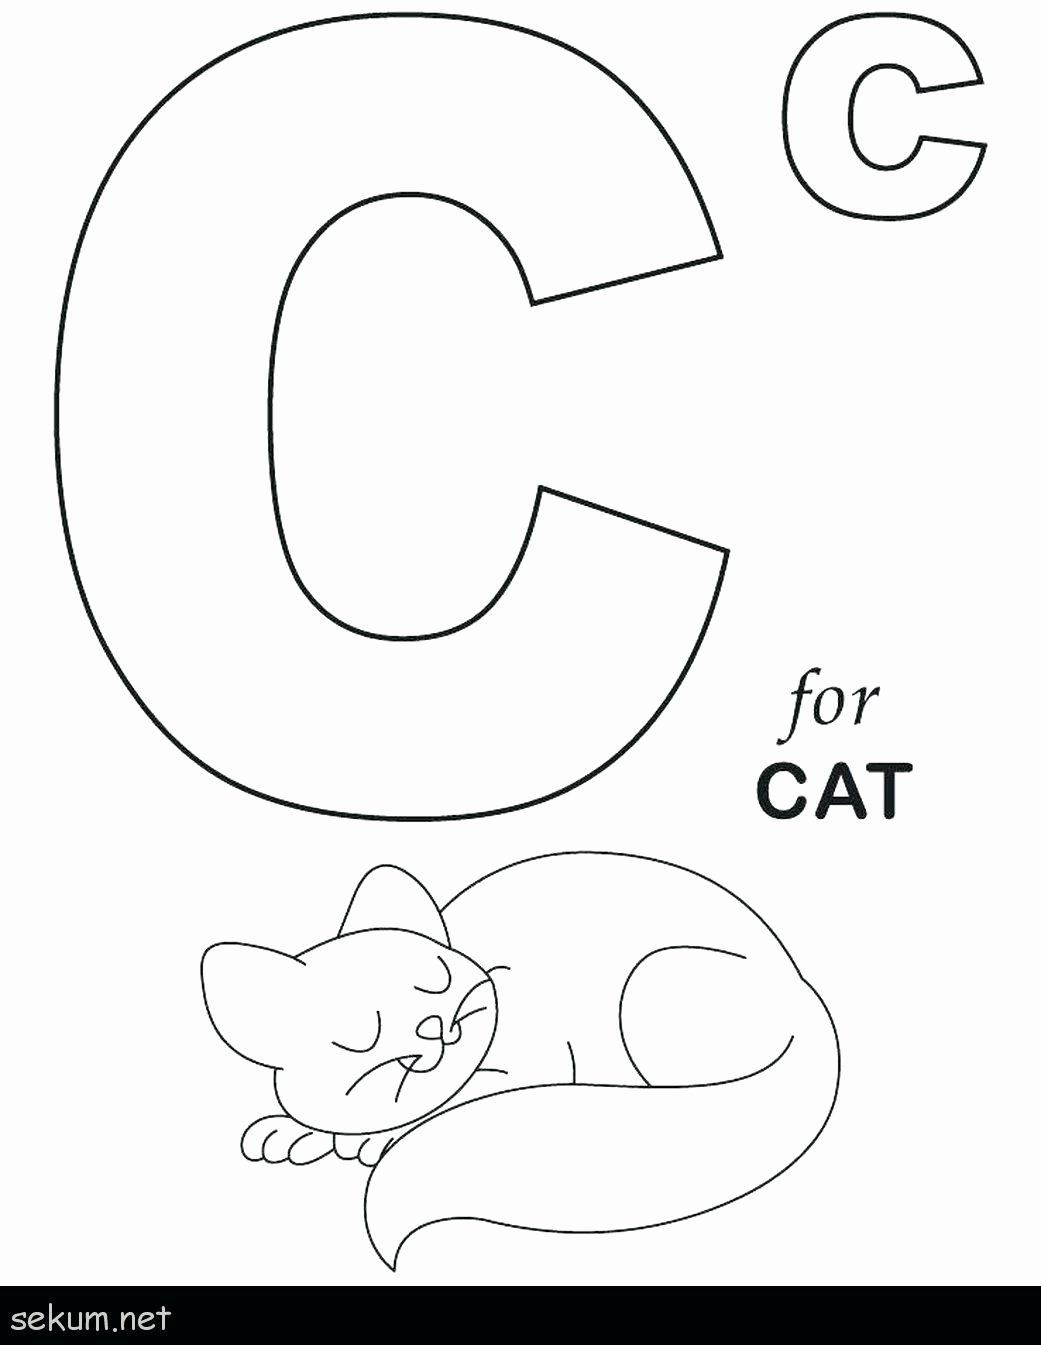 Alphabet Letters To Coloring Pages Di 2020 Dengan Gambar Buku